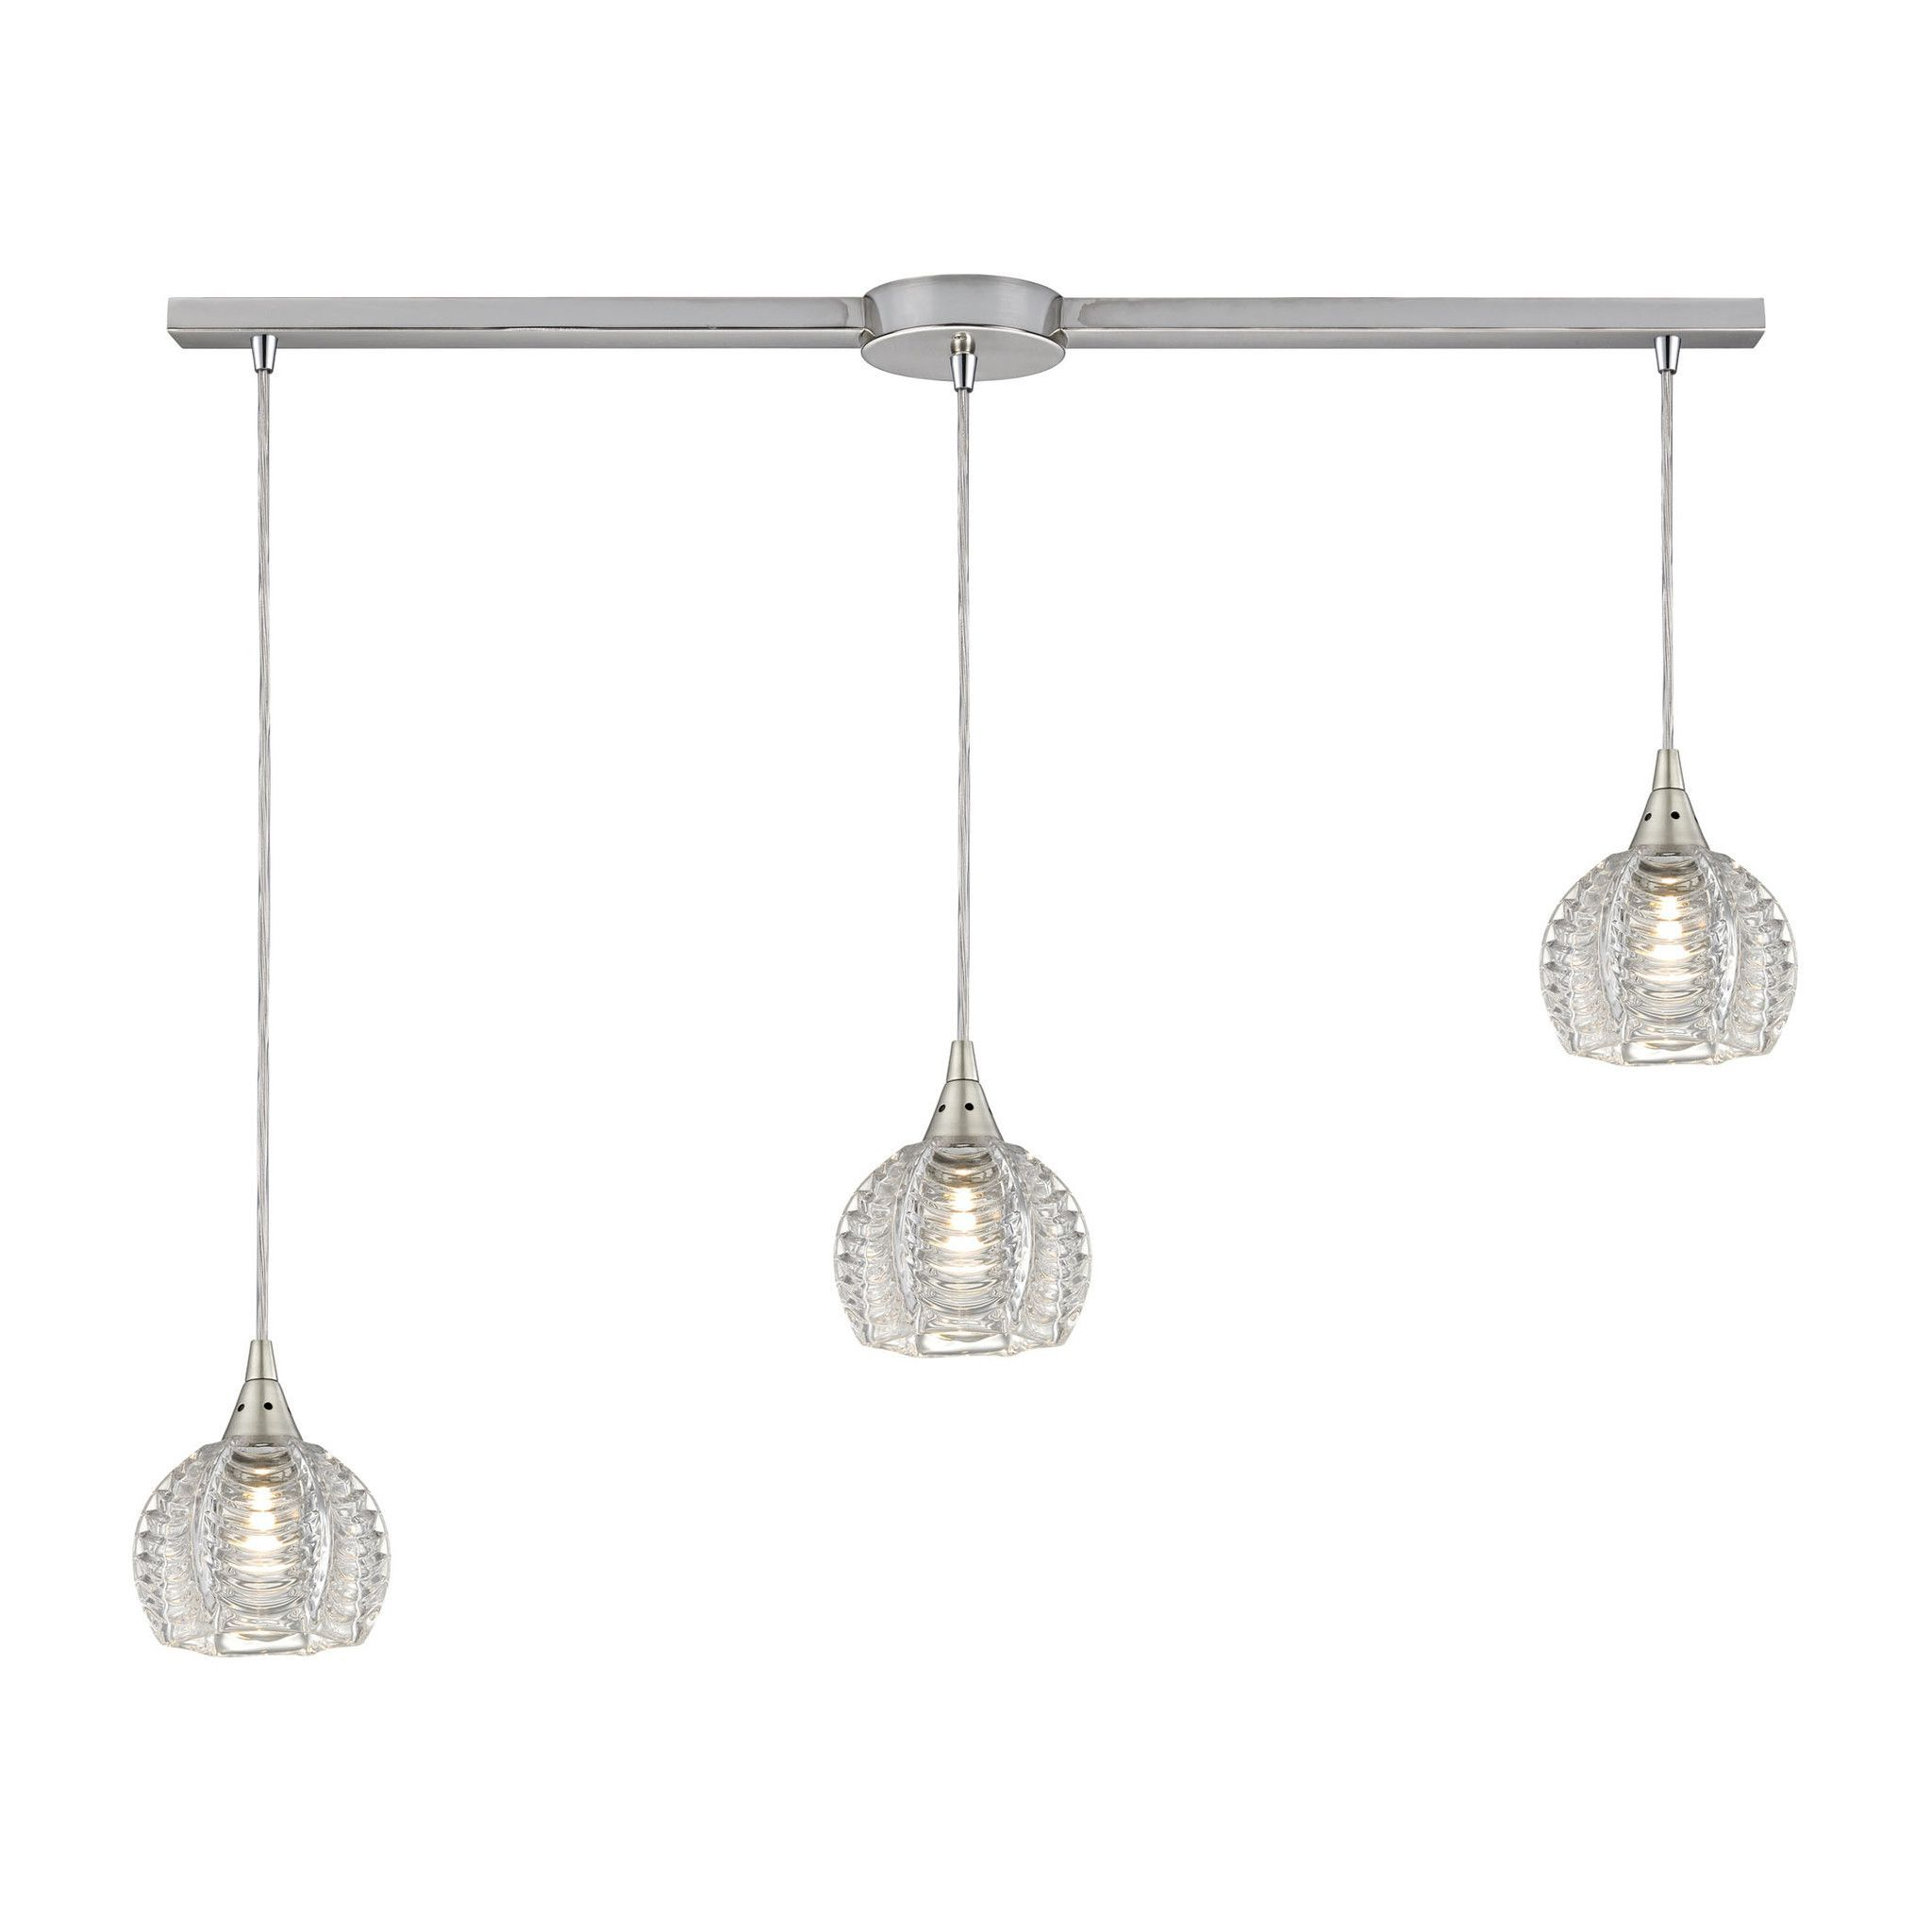 ELK Lighting 3L Kersey Collection Satin Nickel Finish